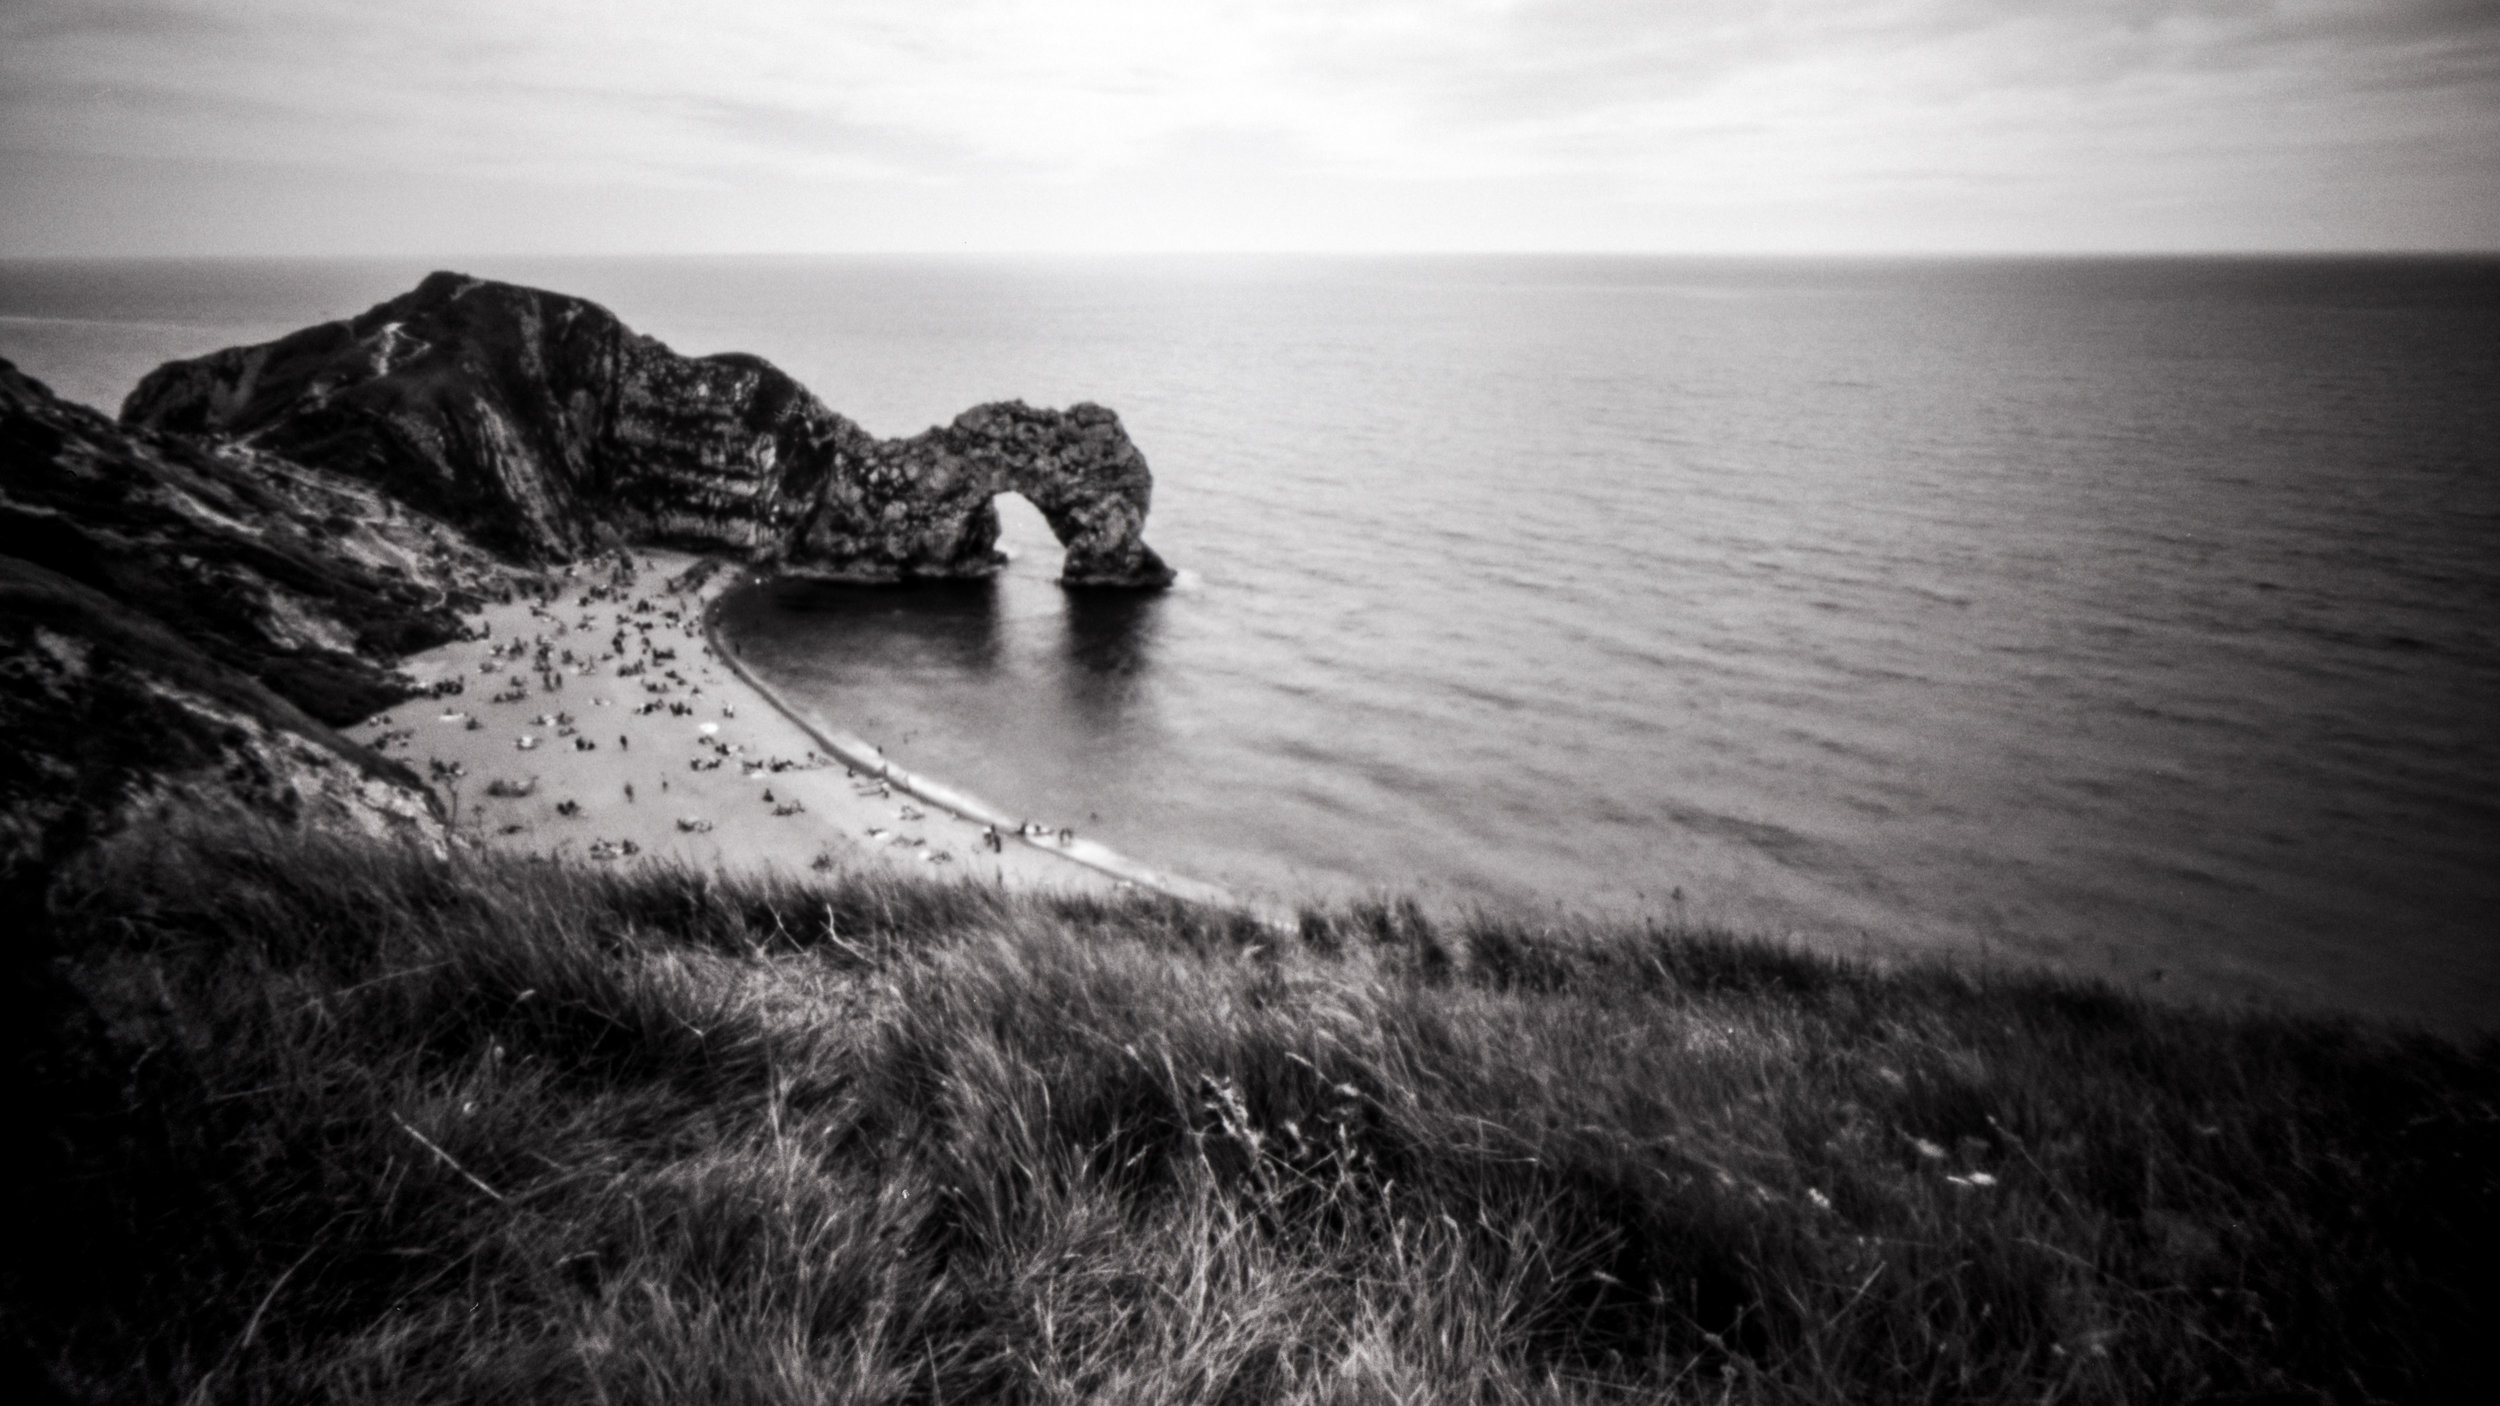 The famous Durdle Door on the Jurassic Coast of England